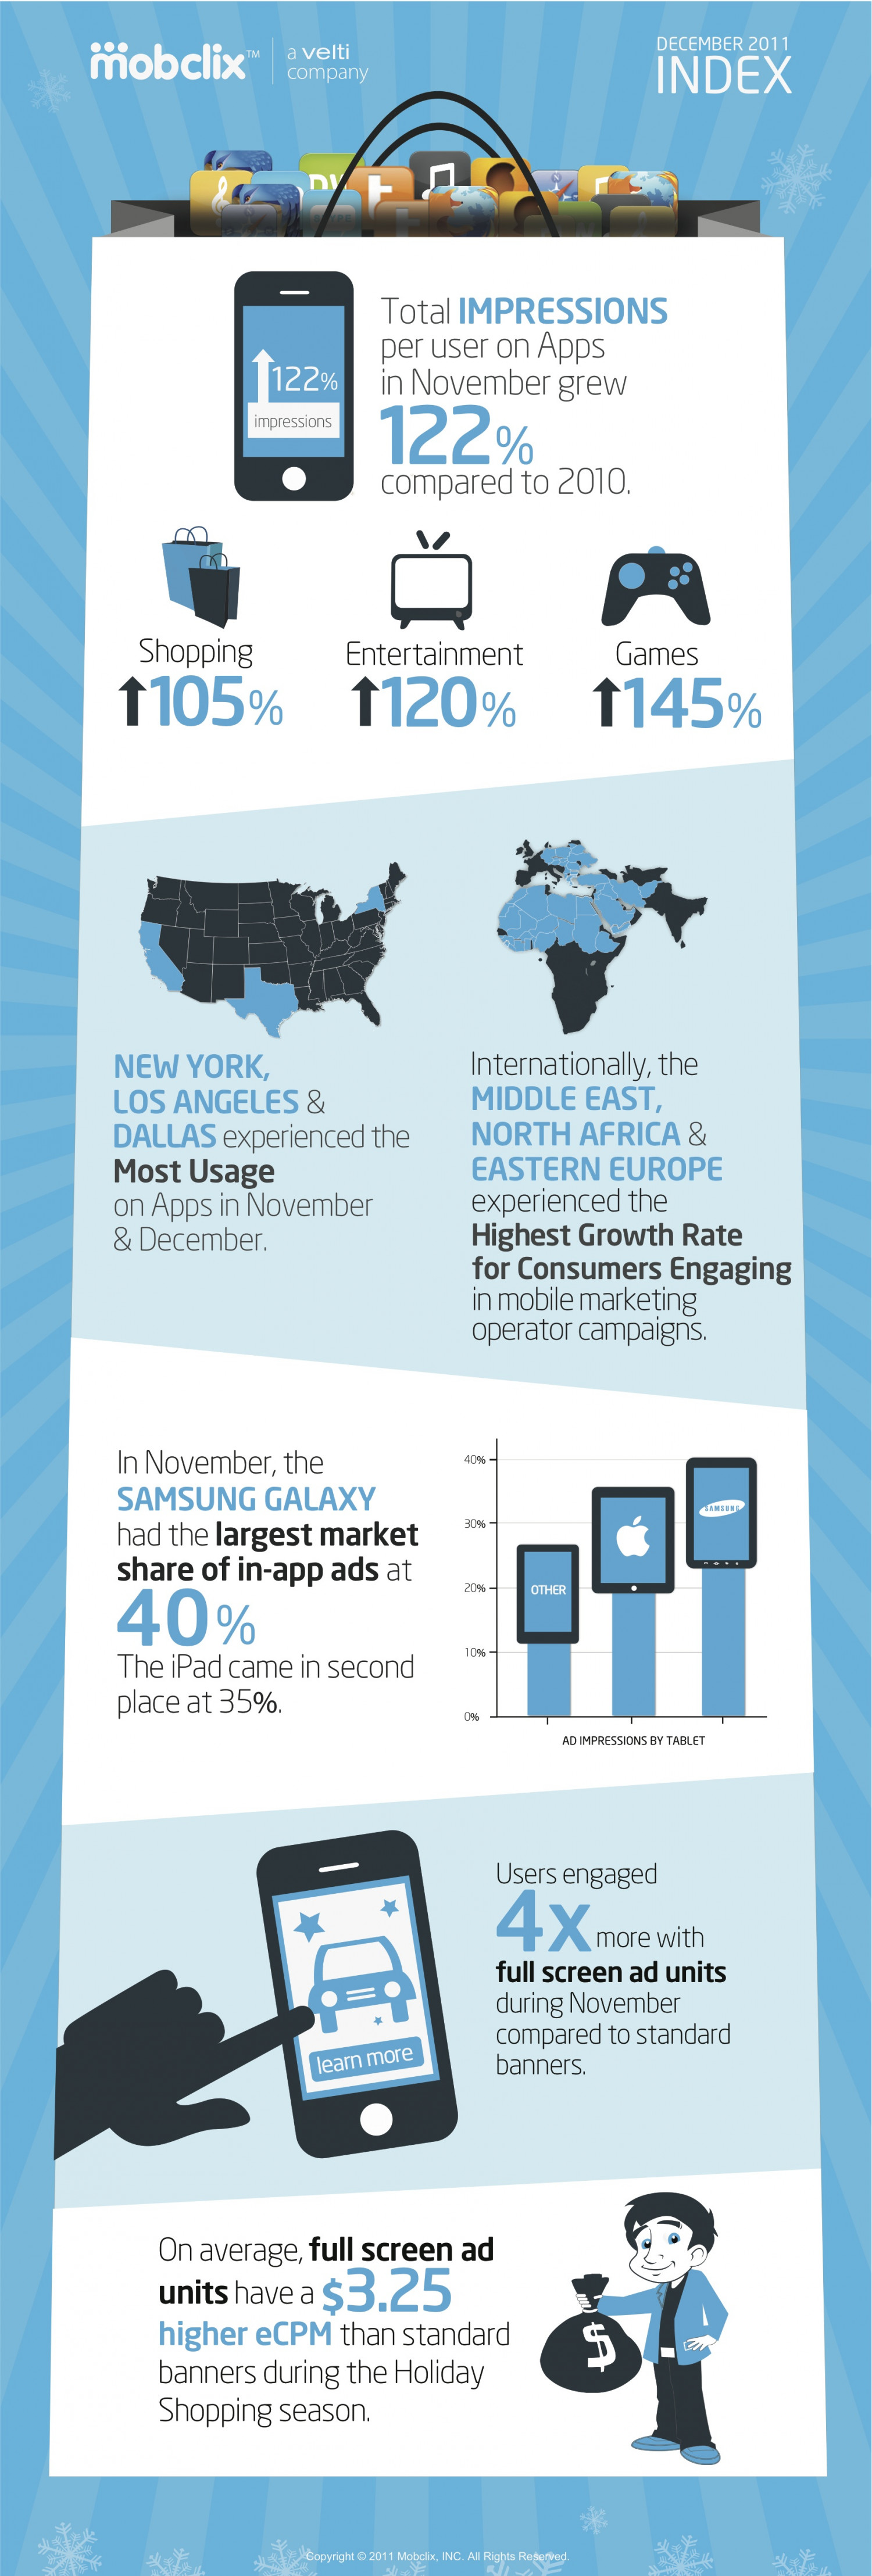 Mobclix Index: 2011 Holiday Infographic